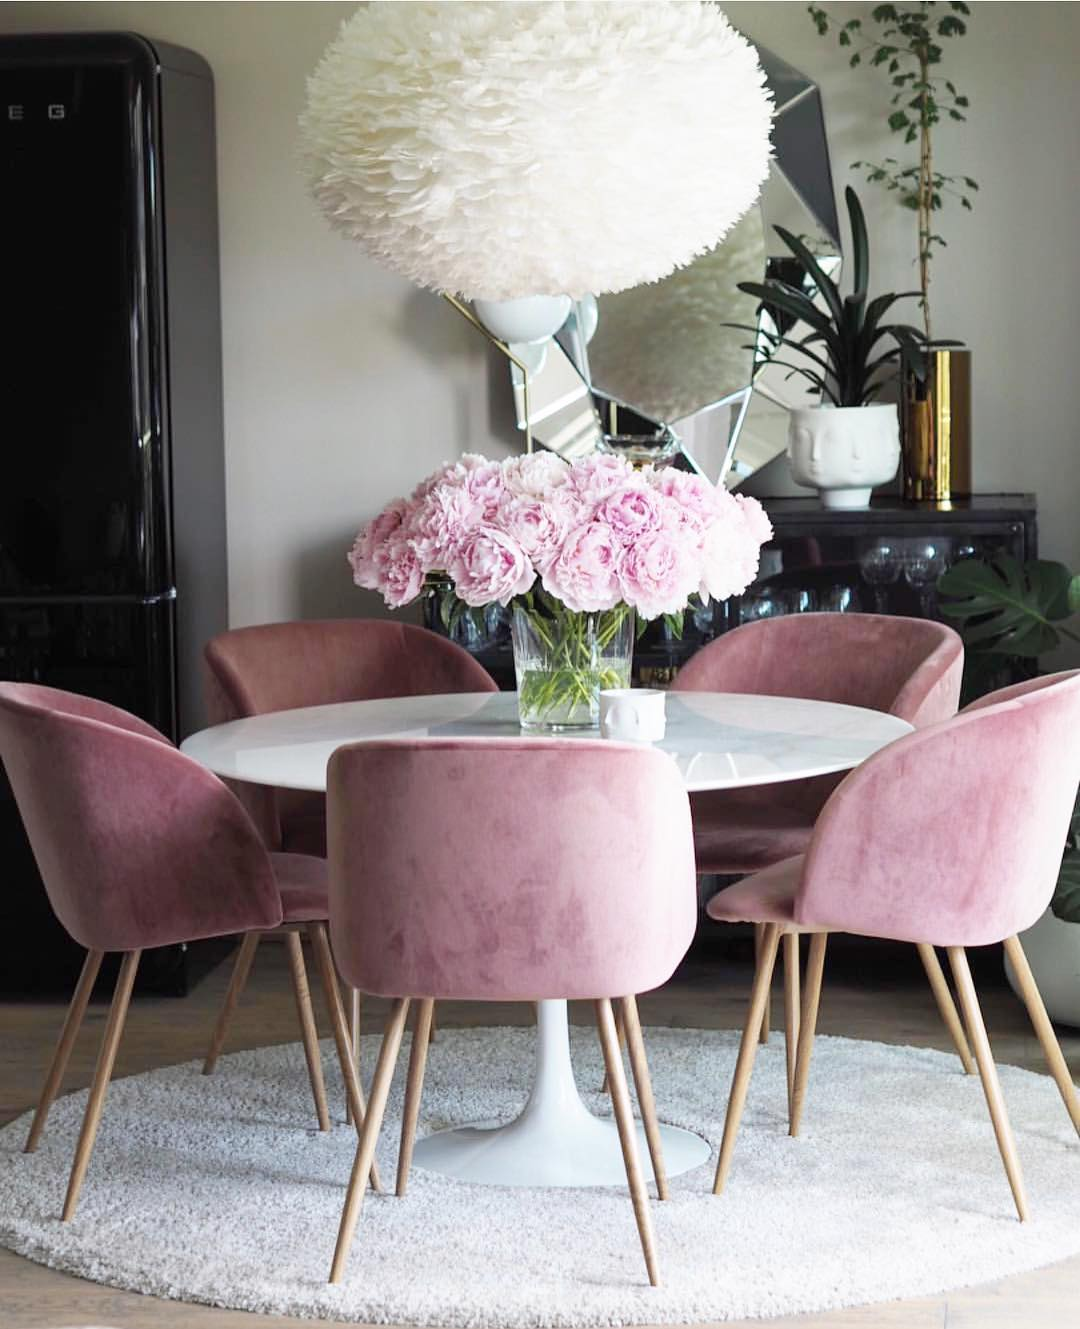 5 Modern Velvet Dining Chairs for the Dining Room